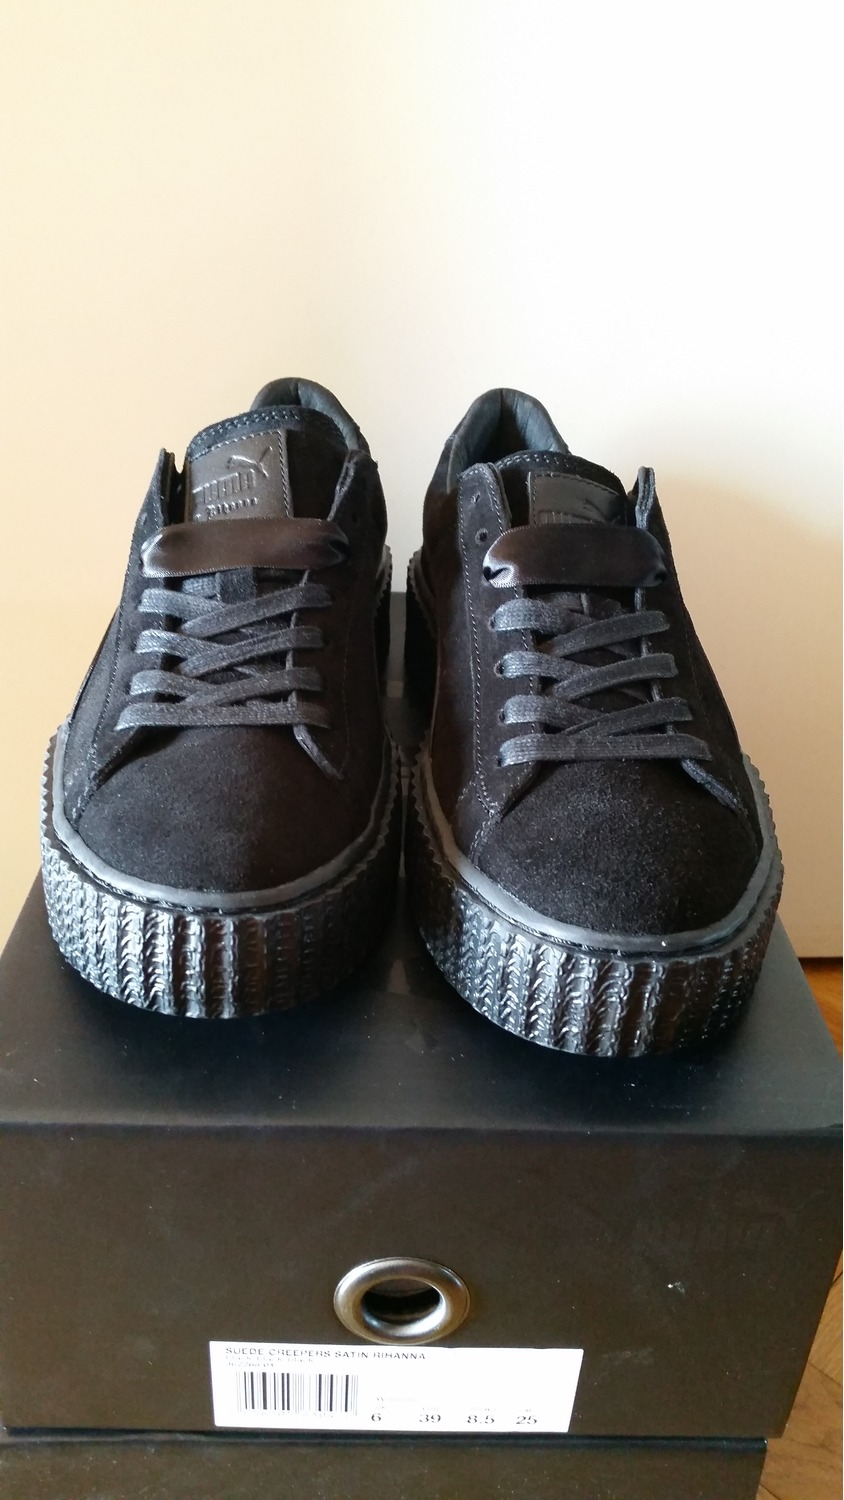 low priced 4e80b fe837 Puma Fenty Creepers All Black wearpointwindfarm.co.uk